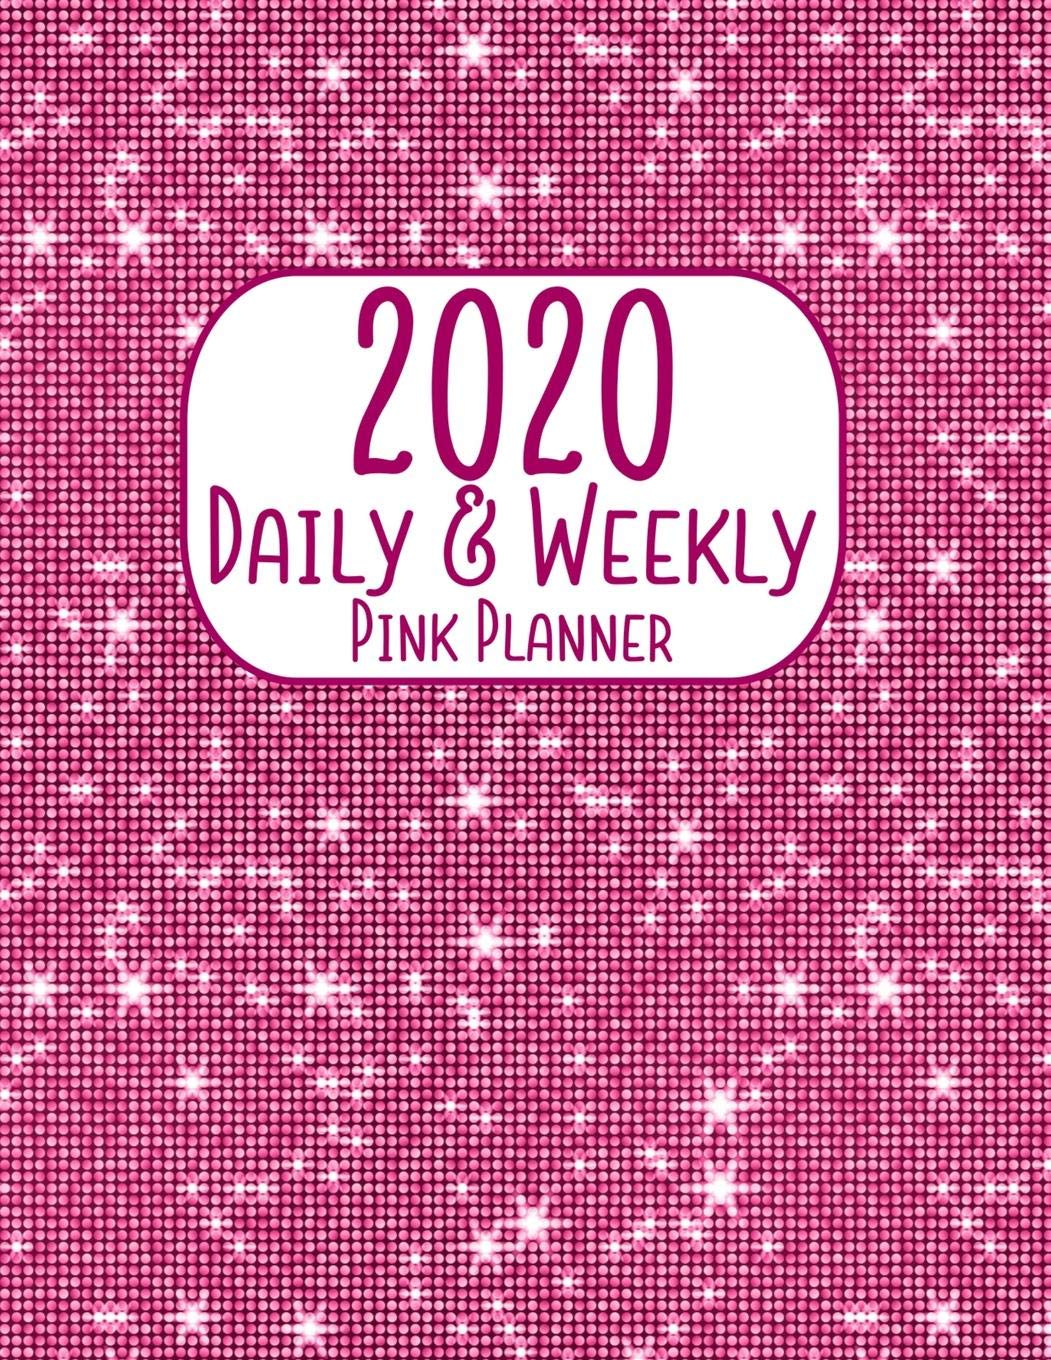 2020 Daily & Weekly Pink Planner: 8.5 x 11 Faux Glitter ...